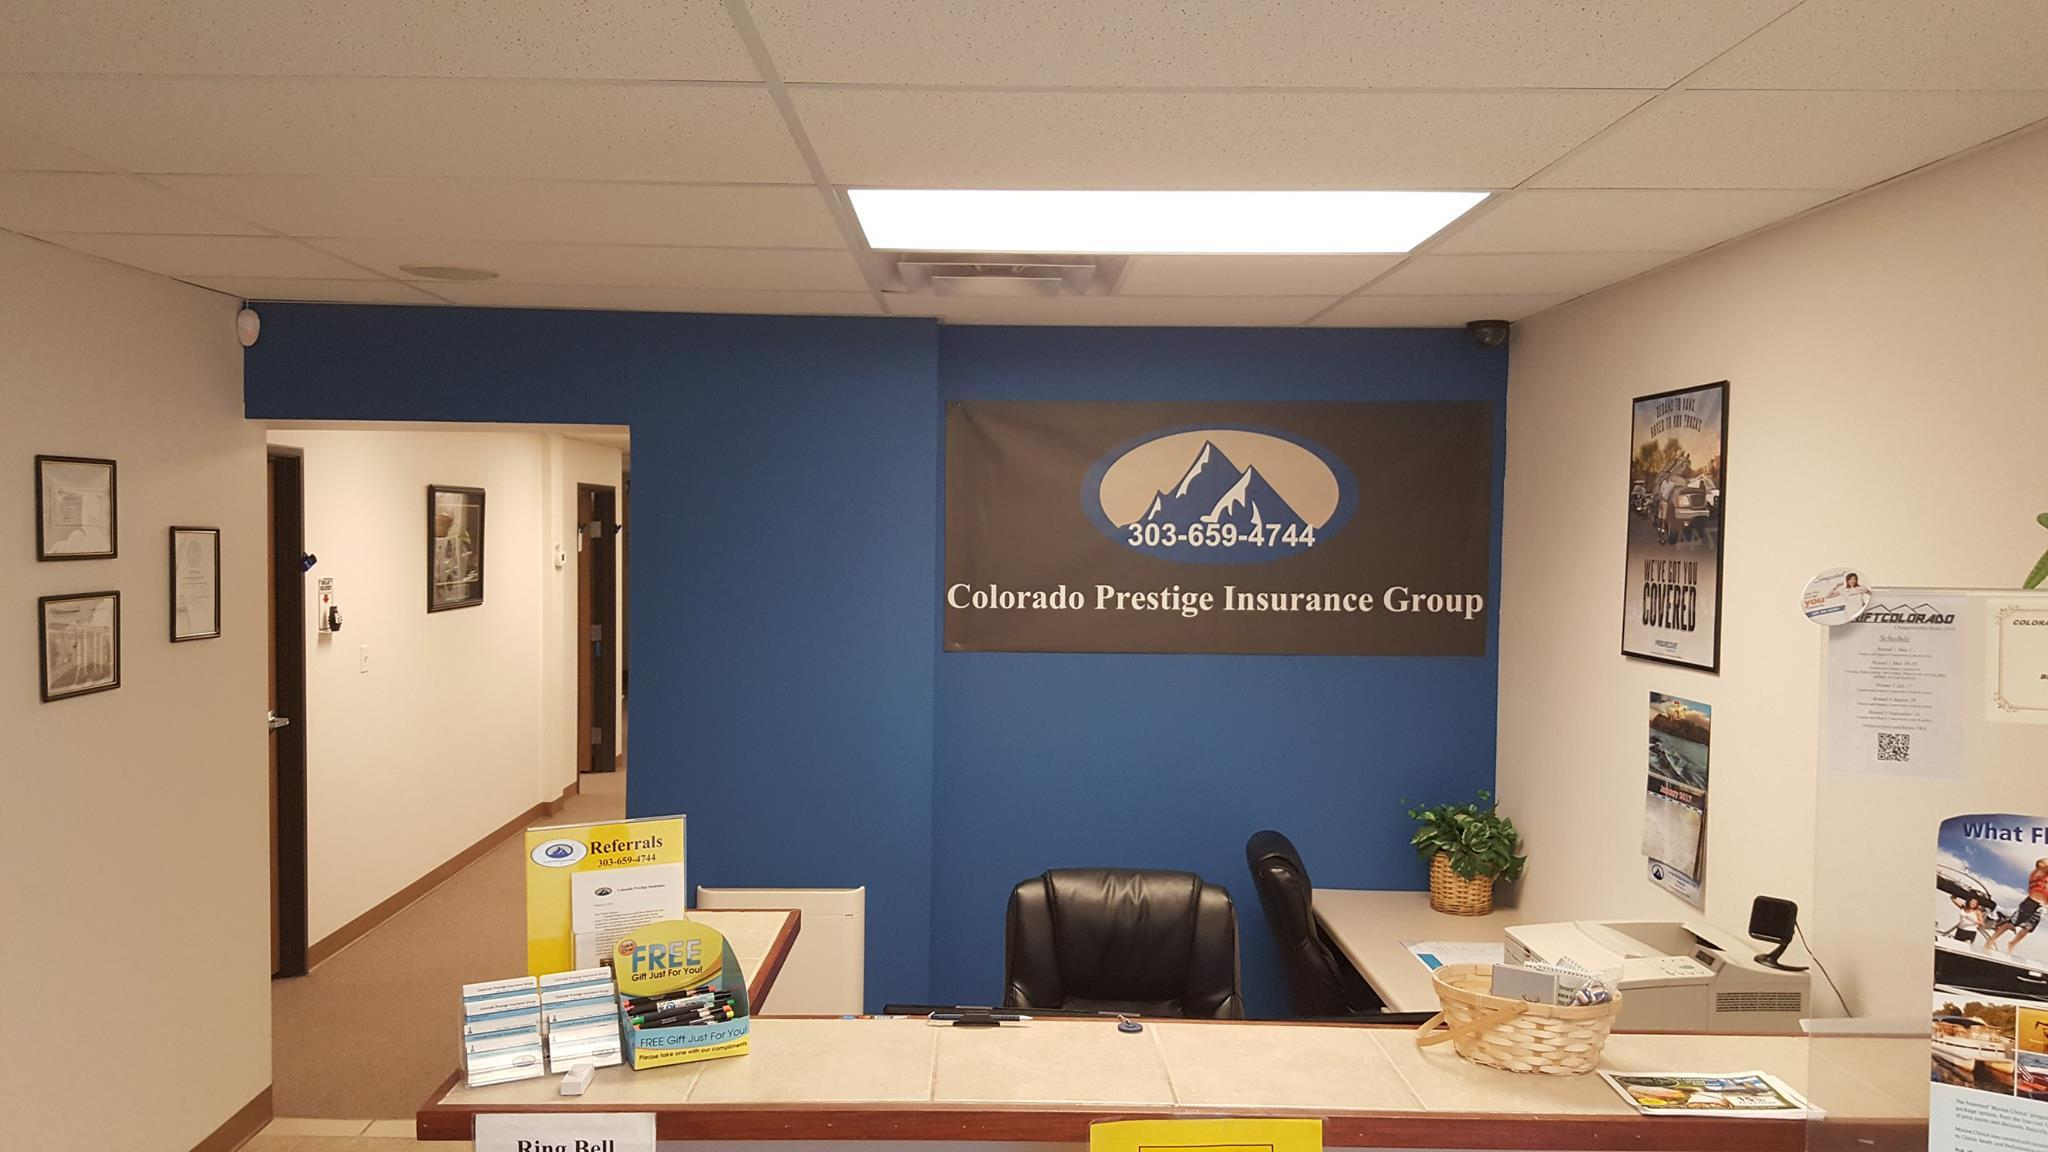 Colorado Prestige Insurance Group image 2